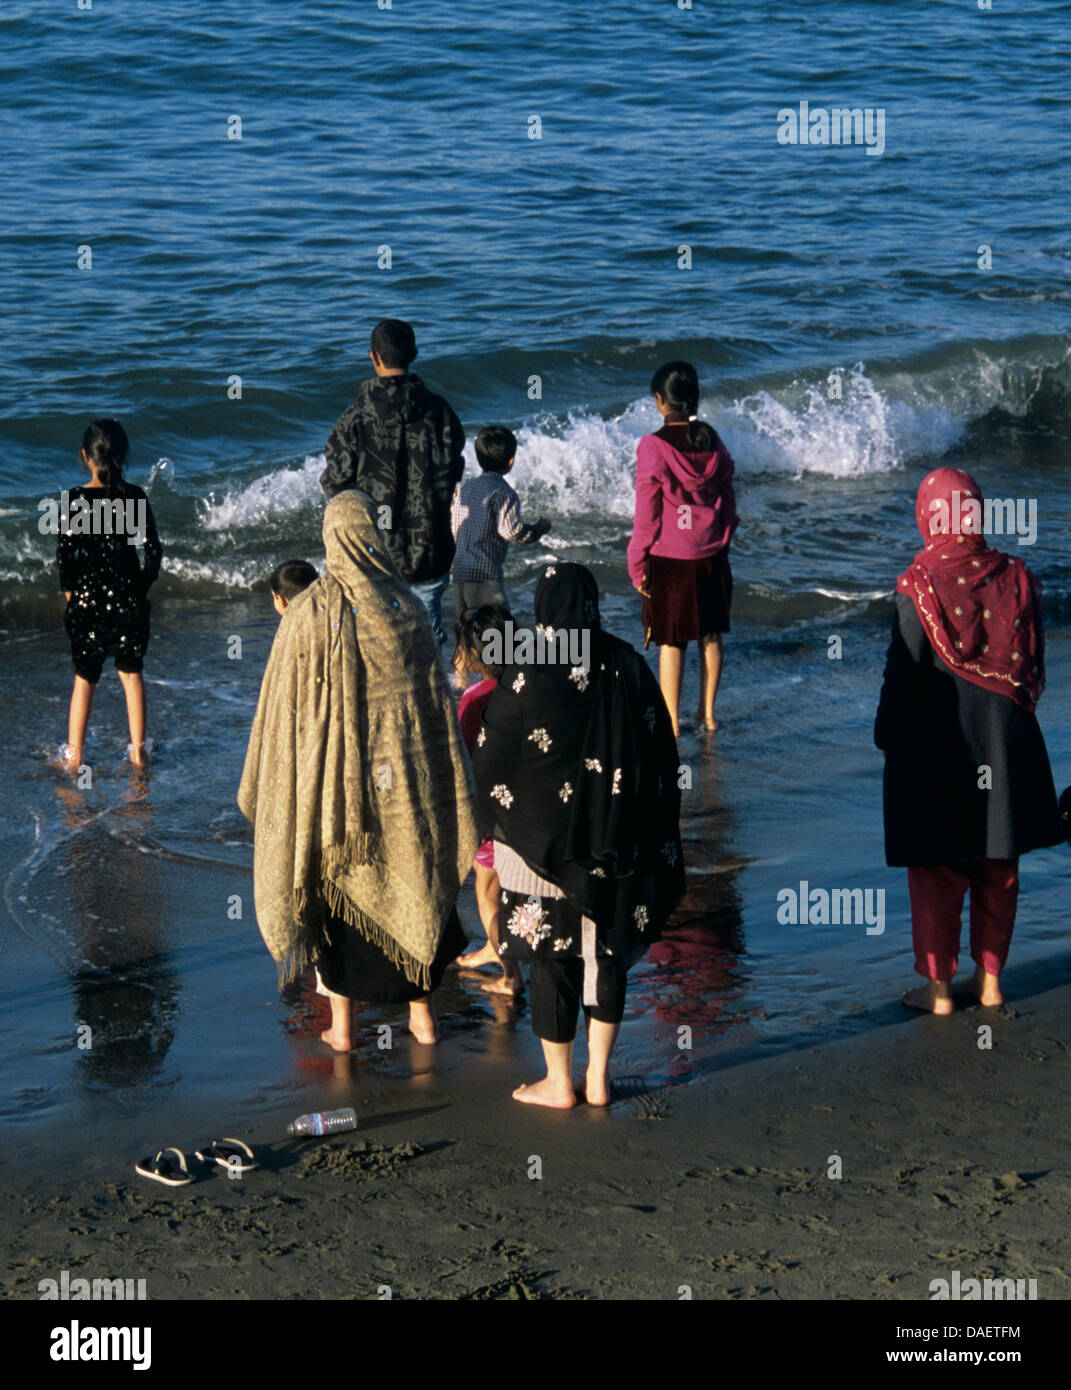 muslim family stand barefoot in pacific ocean on california coast at ocean beach - Stock Image